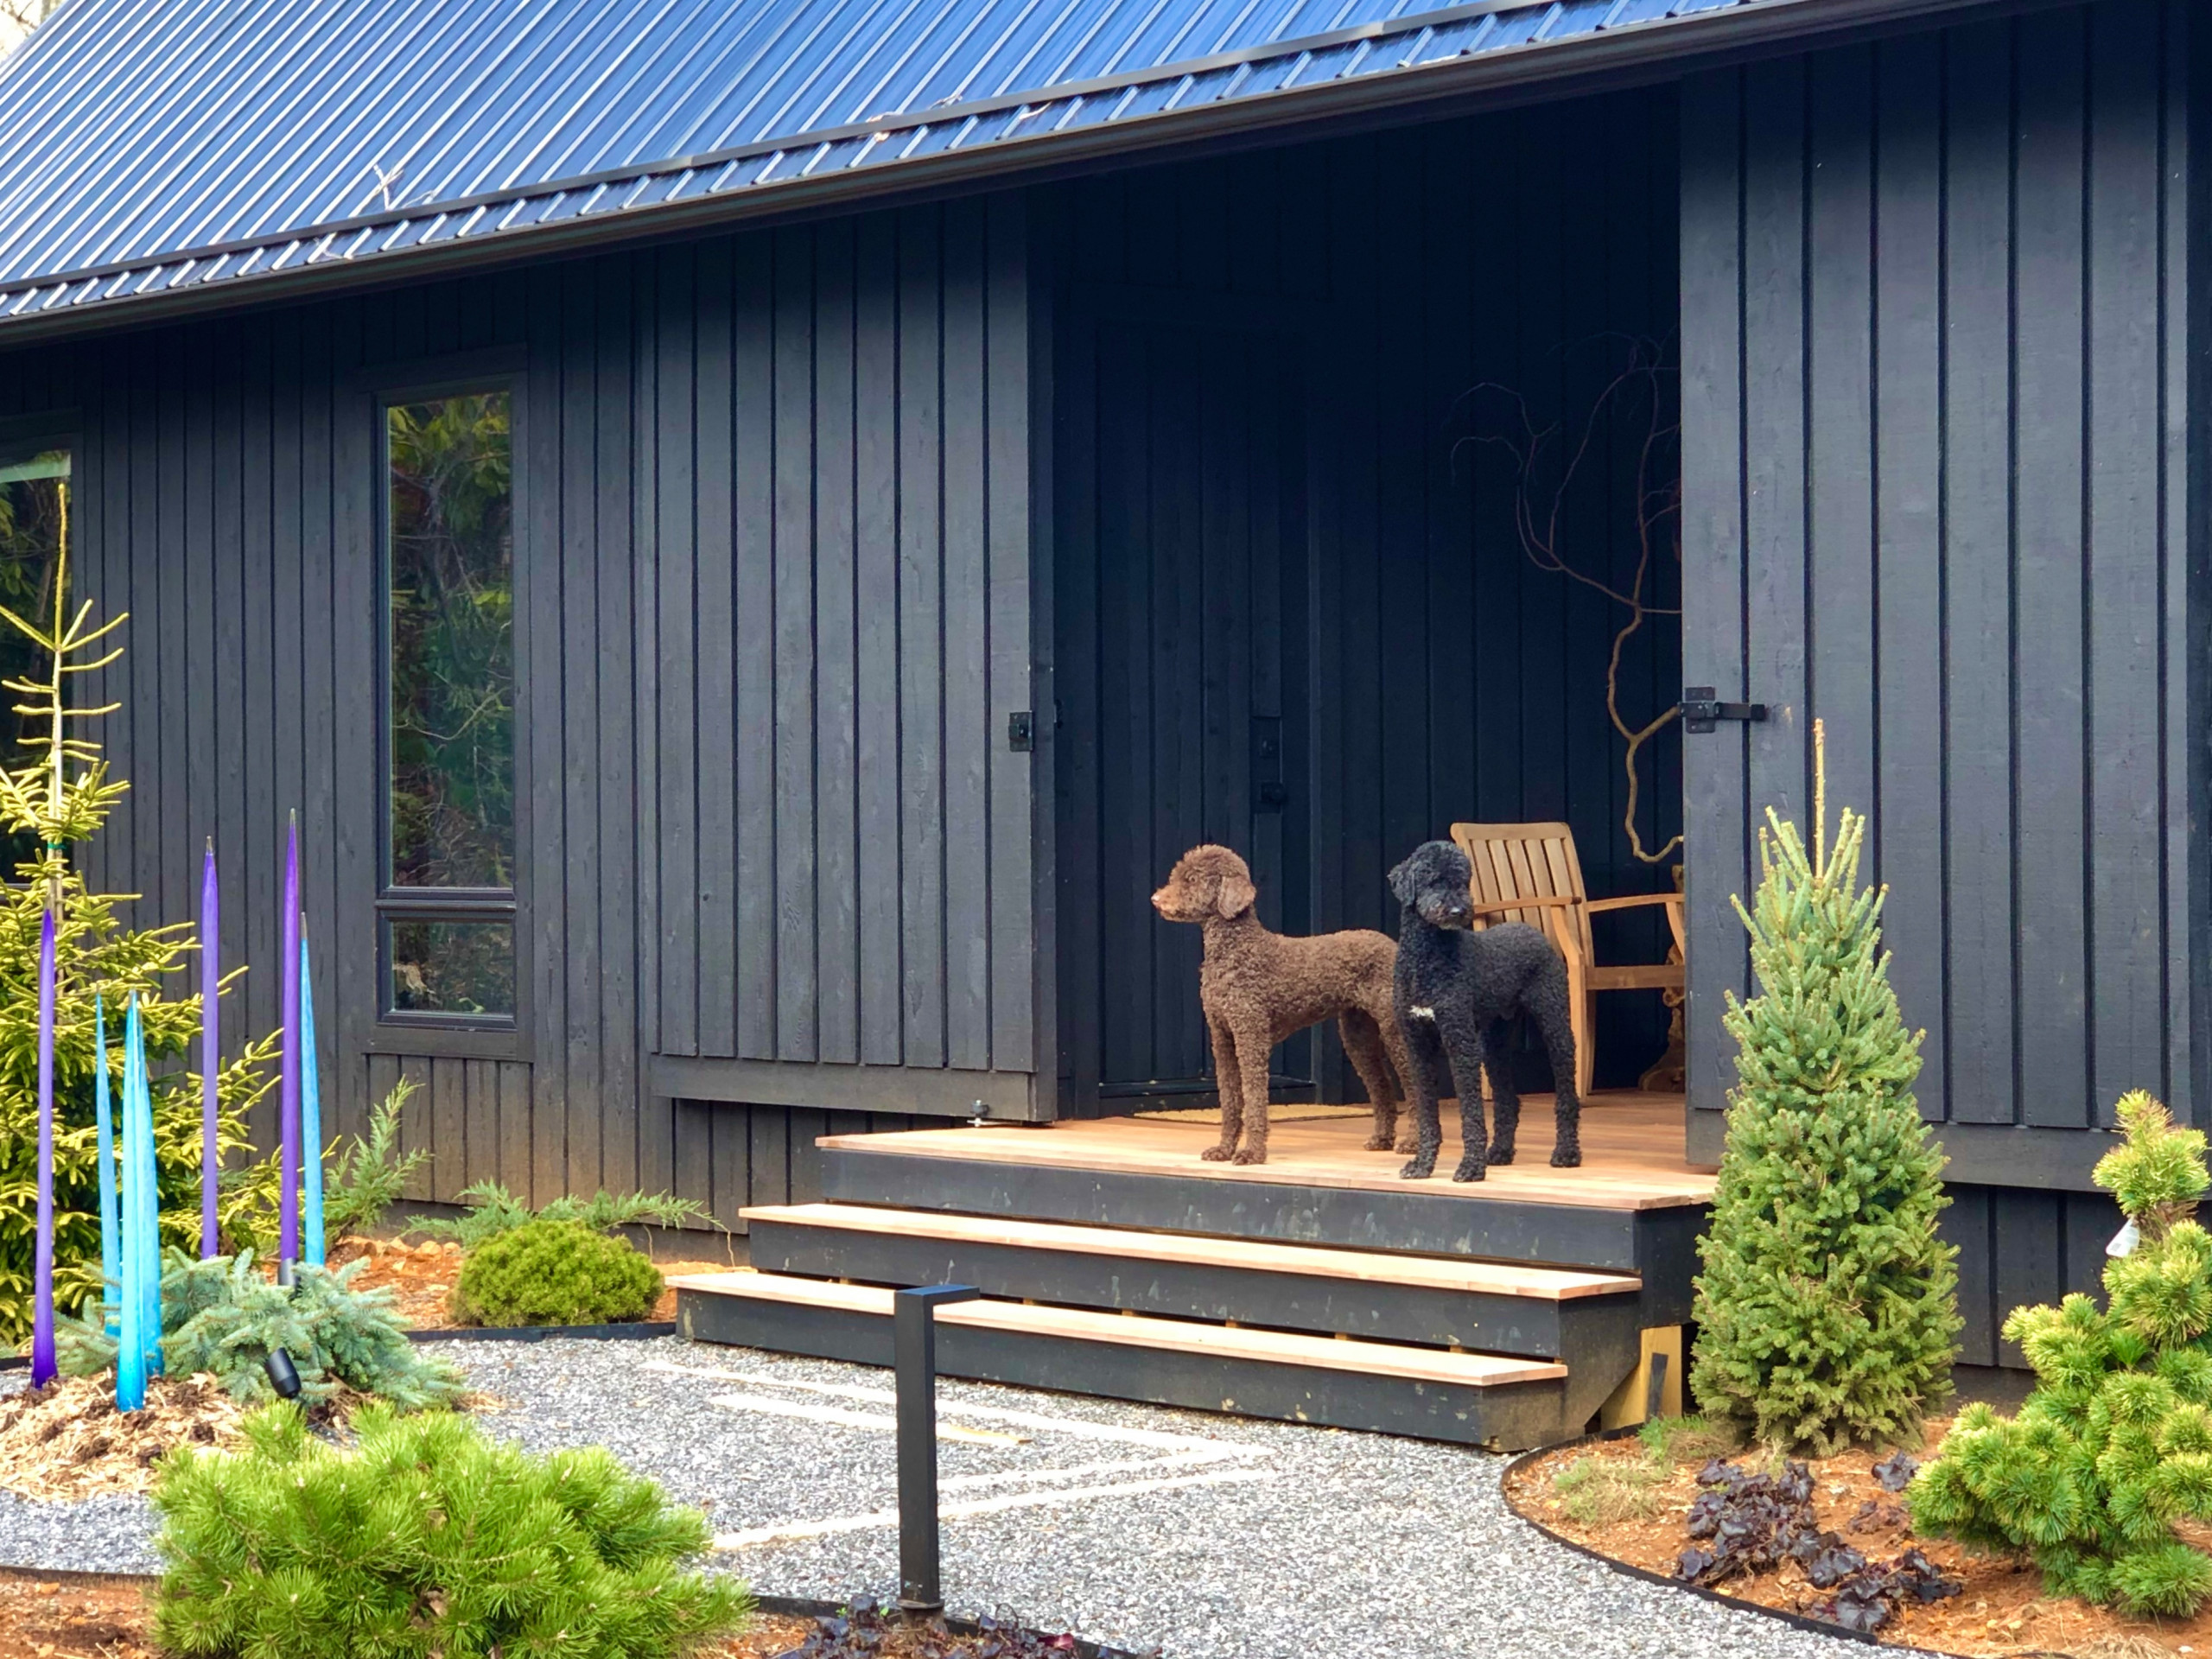 Dogtrot... with dogs!